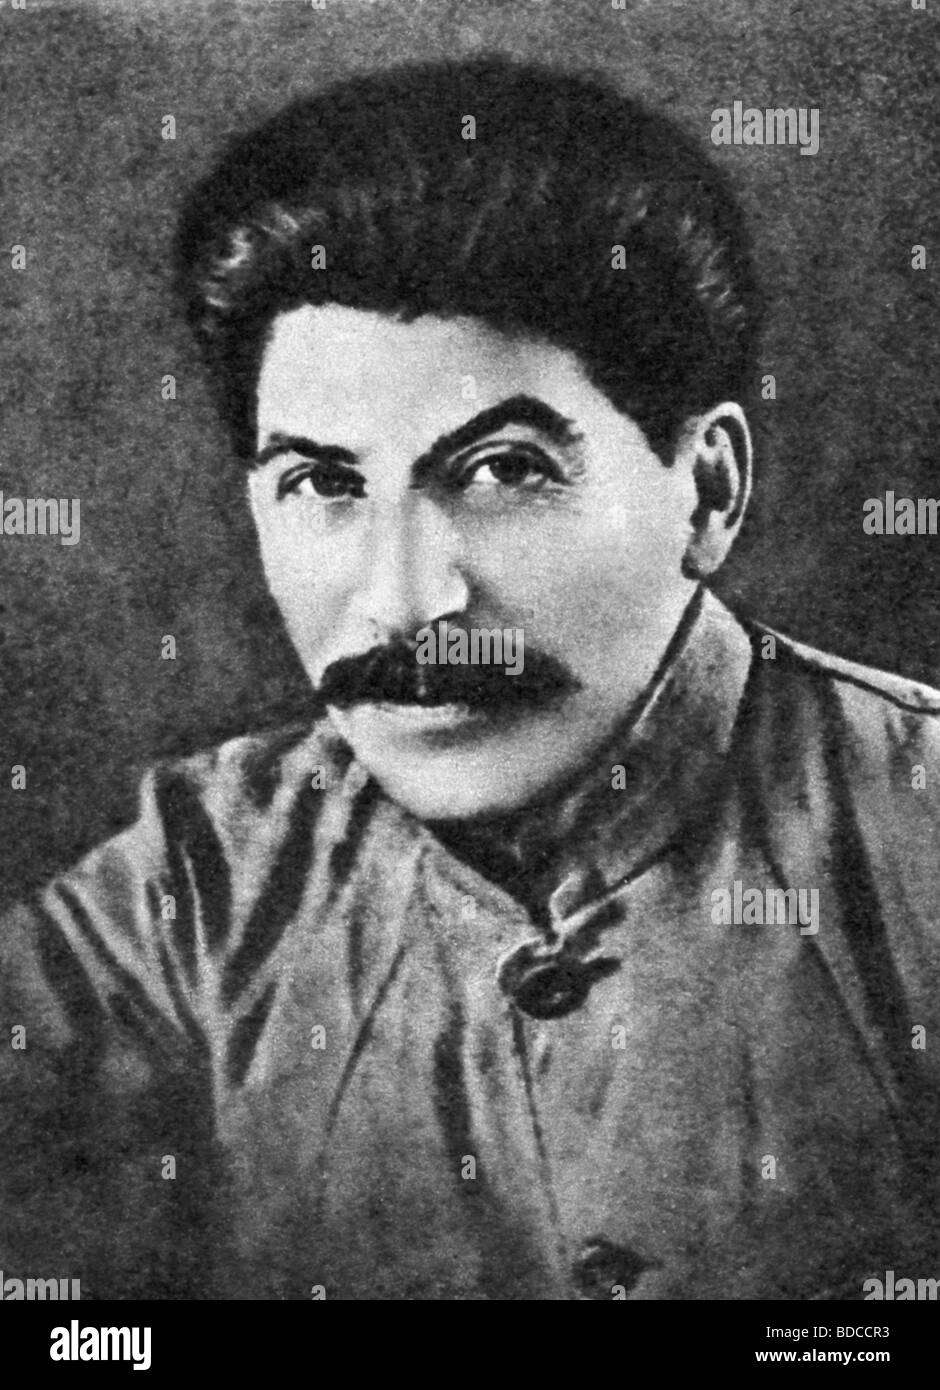 Stalin (Iosif Vissarionovich Jughashvili), 18.12.1878 - 5.3.1953, Soviet politician (CPSU), portrait, 1922, , Additional - Stock Image